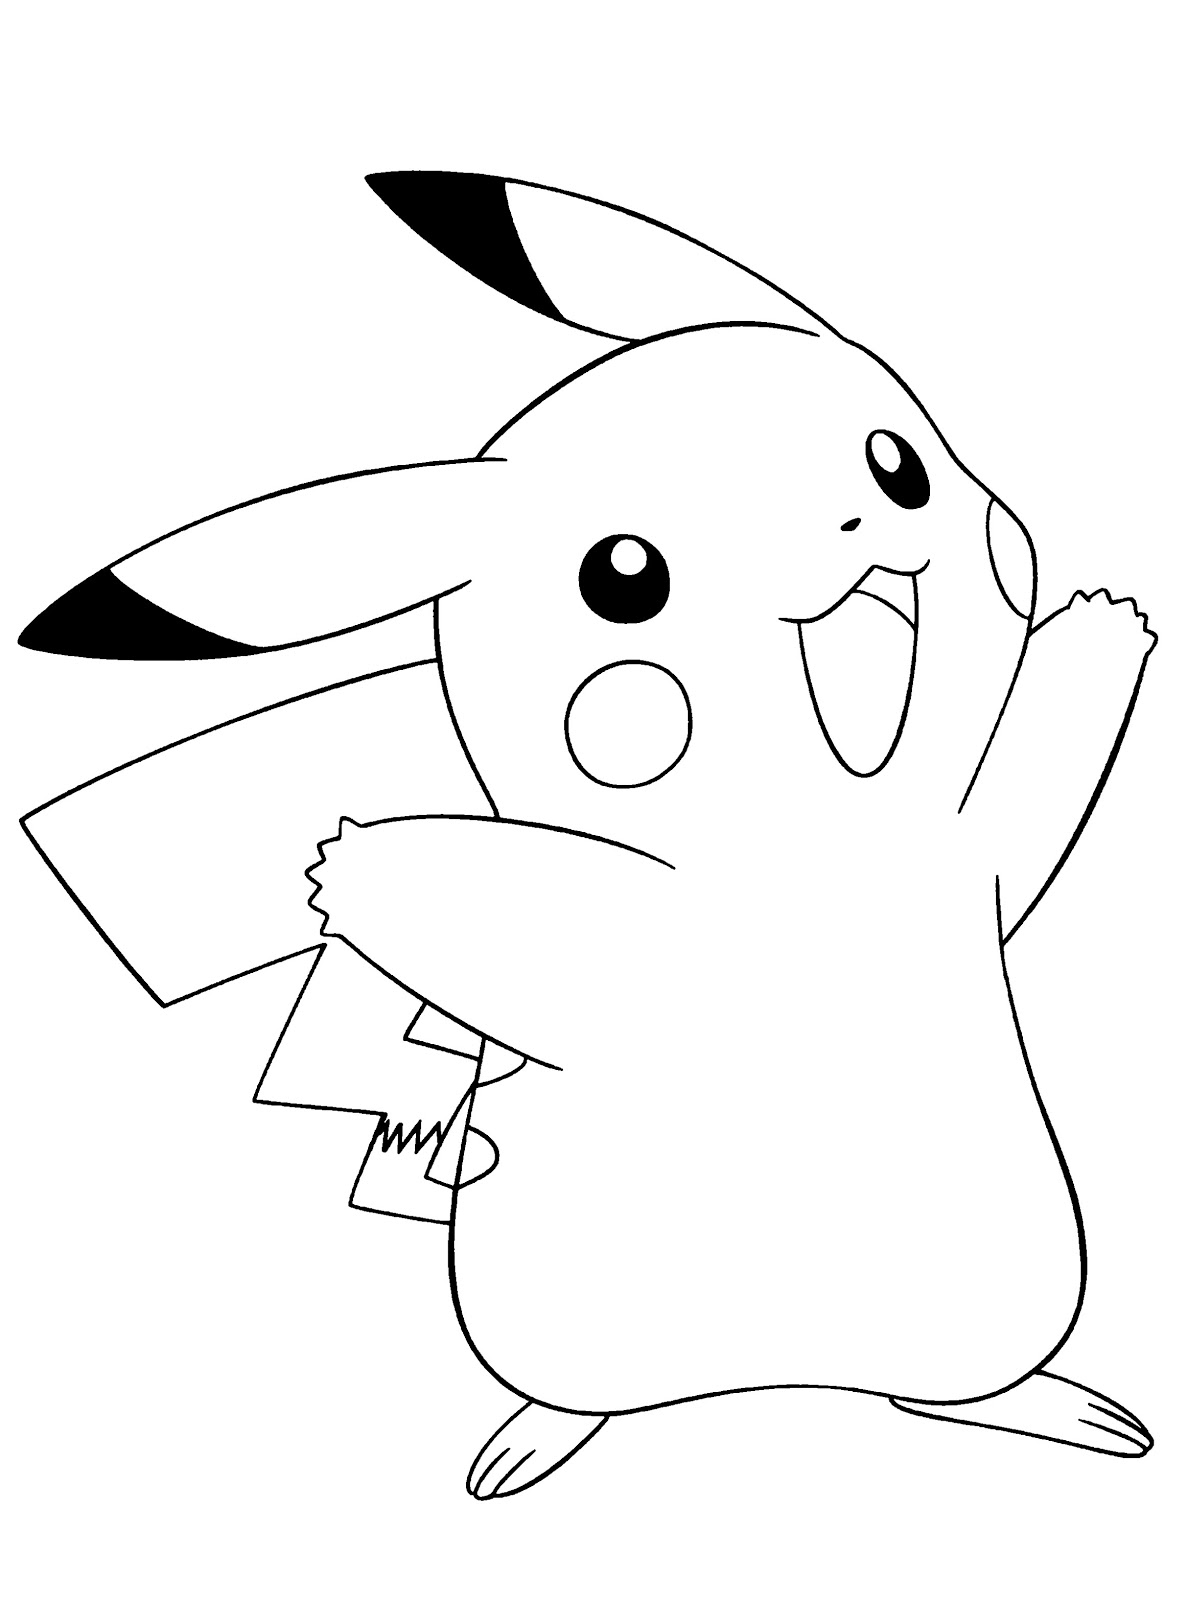 free printable coloring detective pikachu coloring pages to print out - pokemon let's go pikachu coloring pages